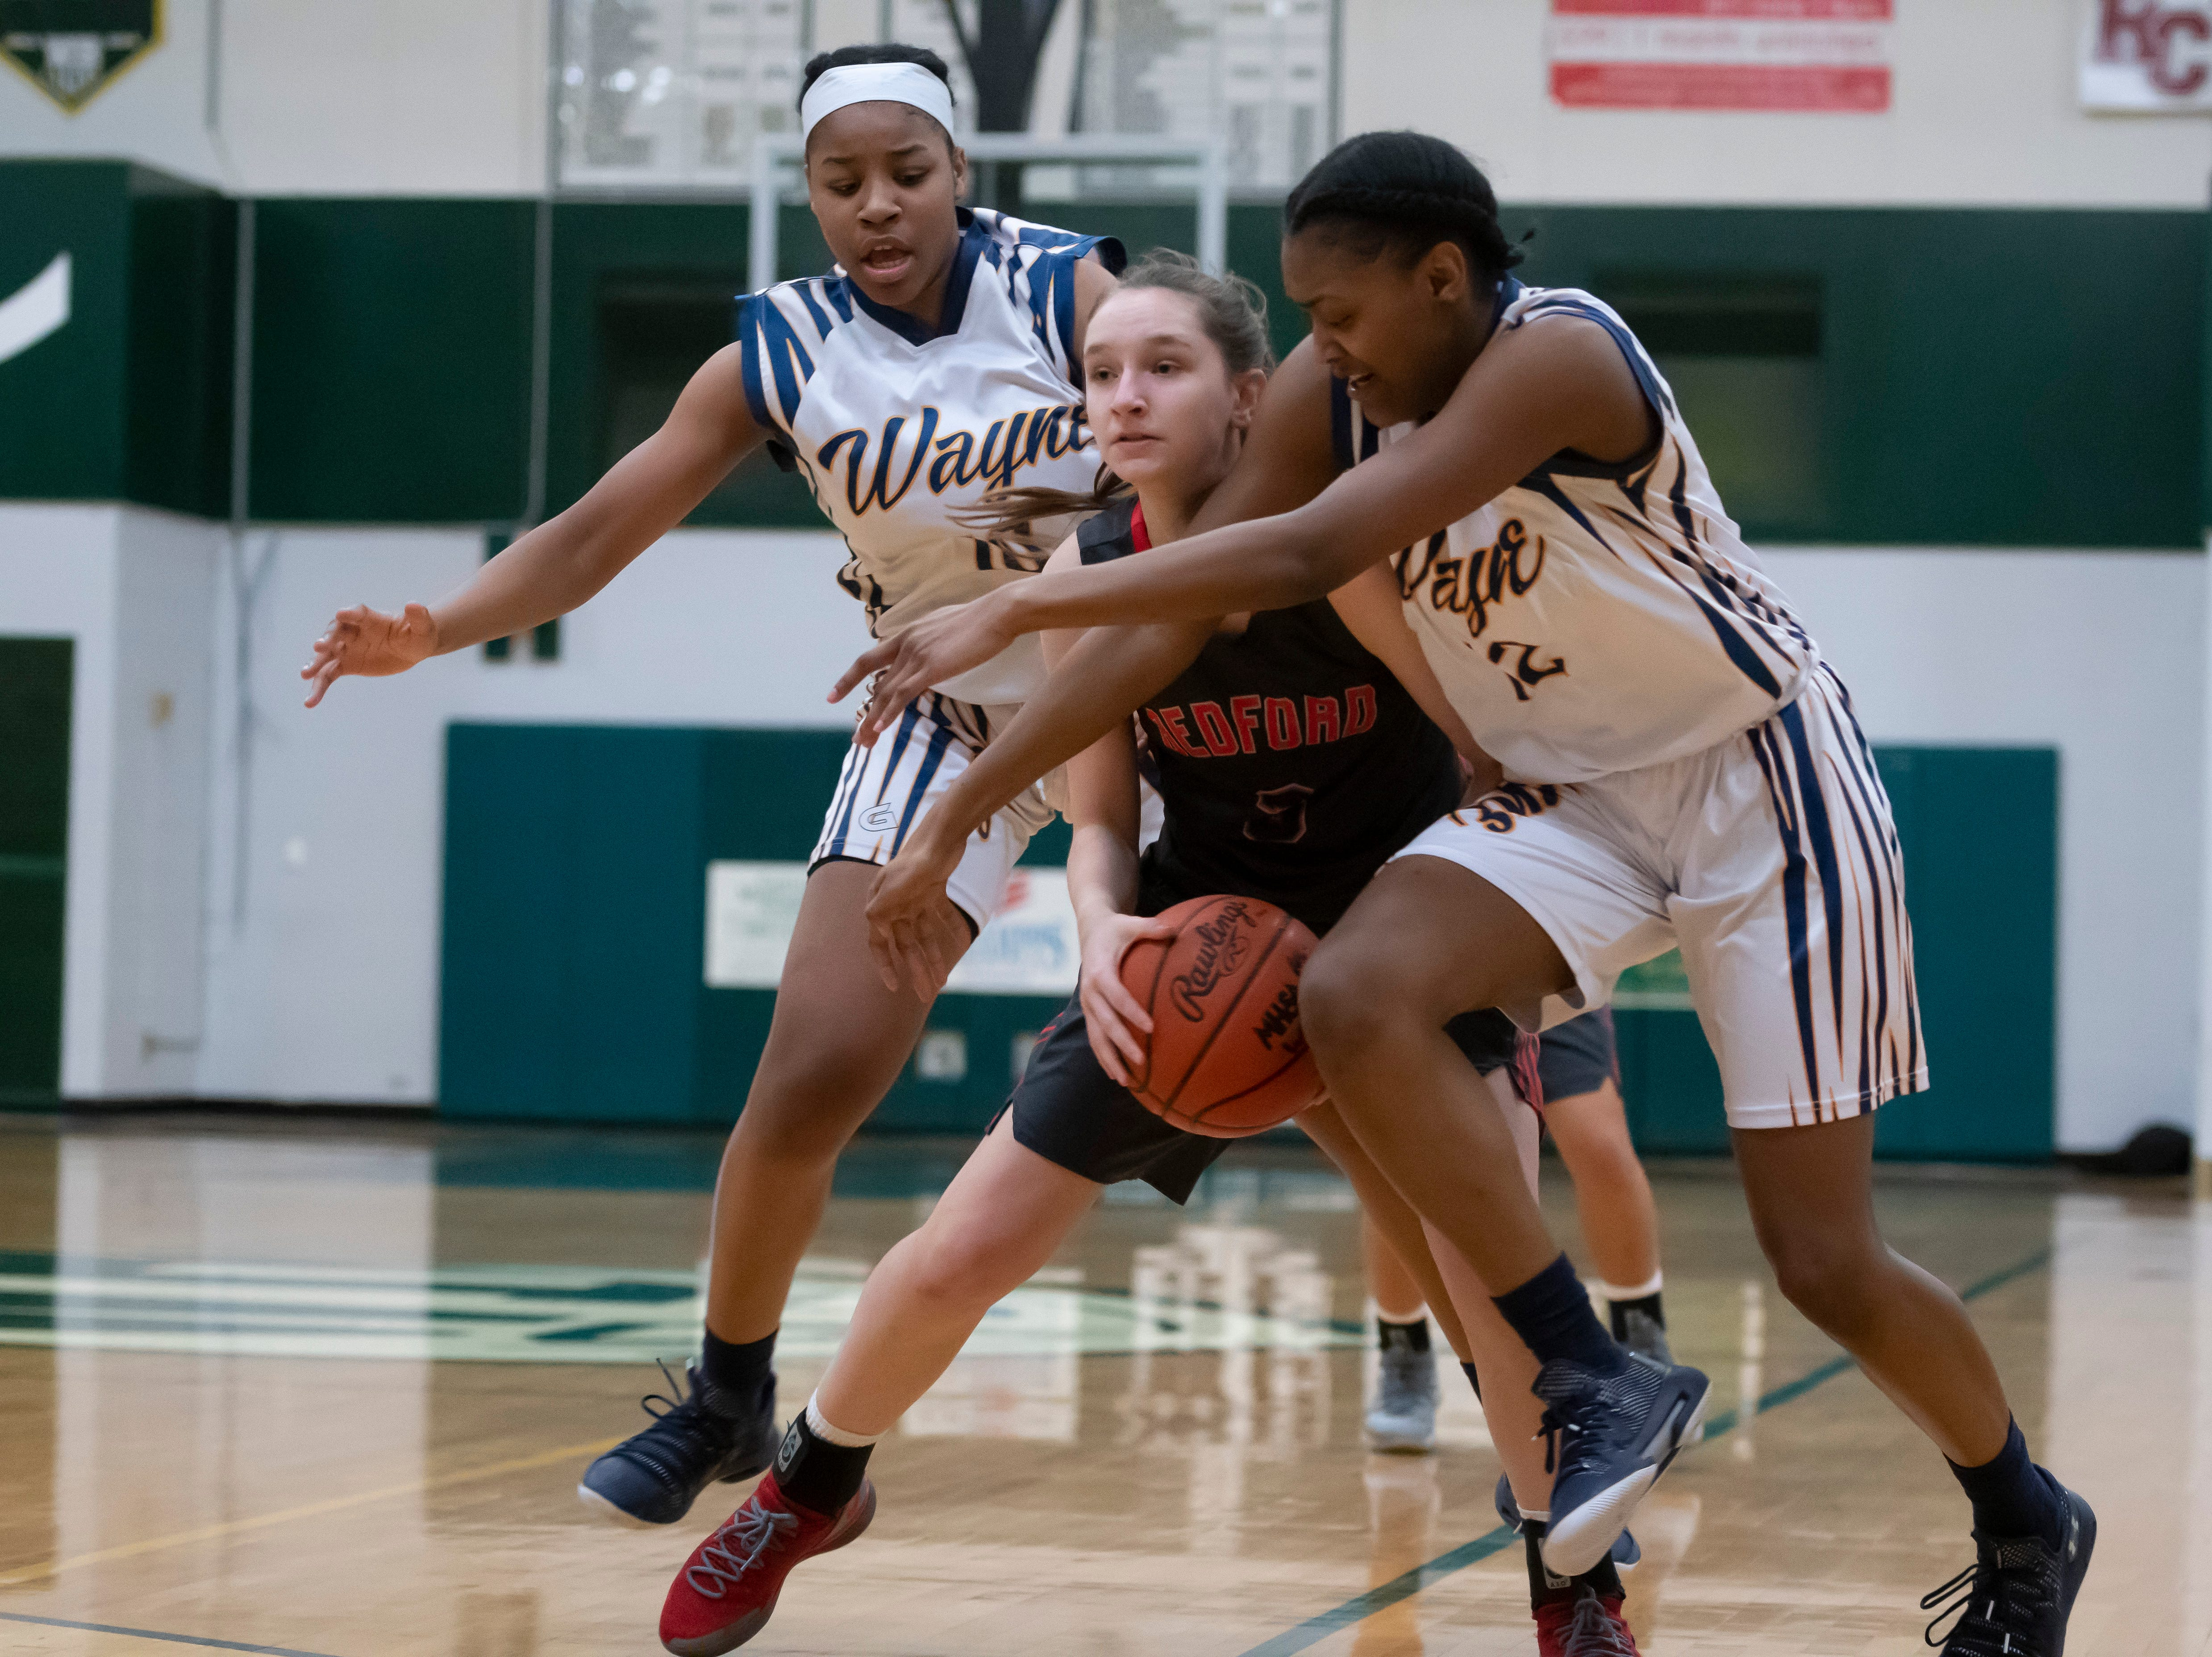 Wayne Memorial guard Jeanae Terry, left, and forward Jayah Hicks try to steal the ball from Bedford's Madison Norton during the first half.